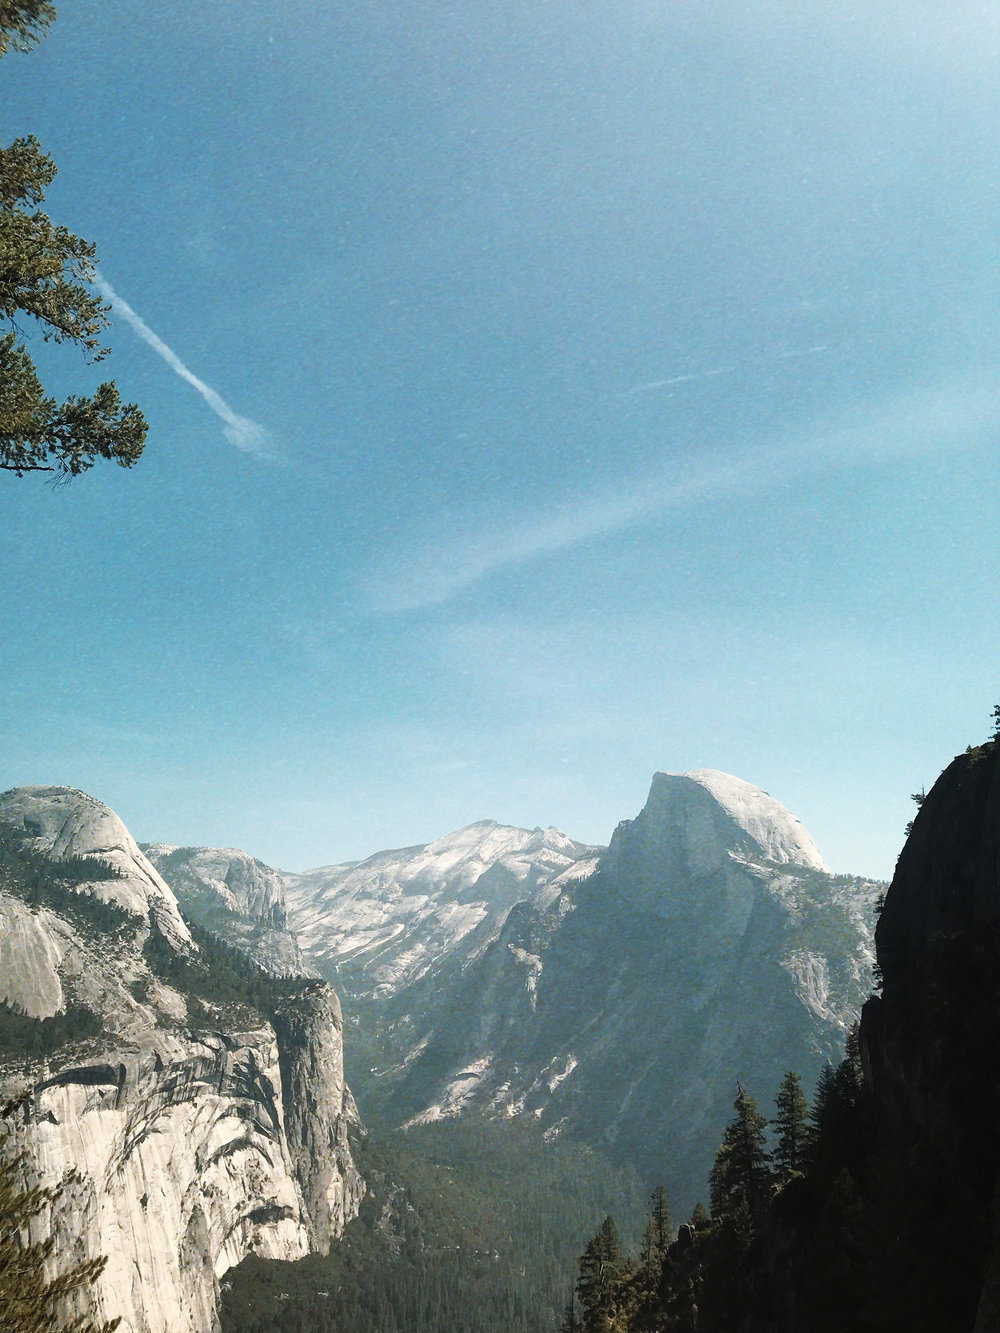 Yosemite - A quick jaunt inland took us to Yosemite and Sequoia National Parks. A week packed full of hikes and camp margaritas filled our cups. And on second thought, Yosemite might be the most beautiful place in the country.